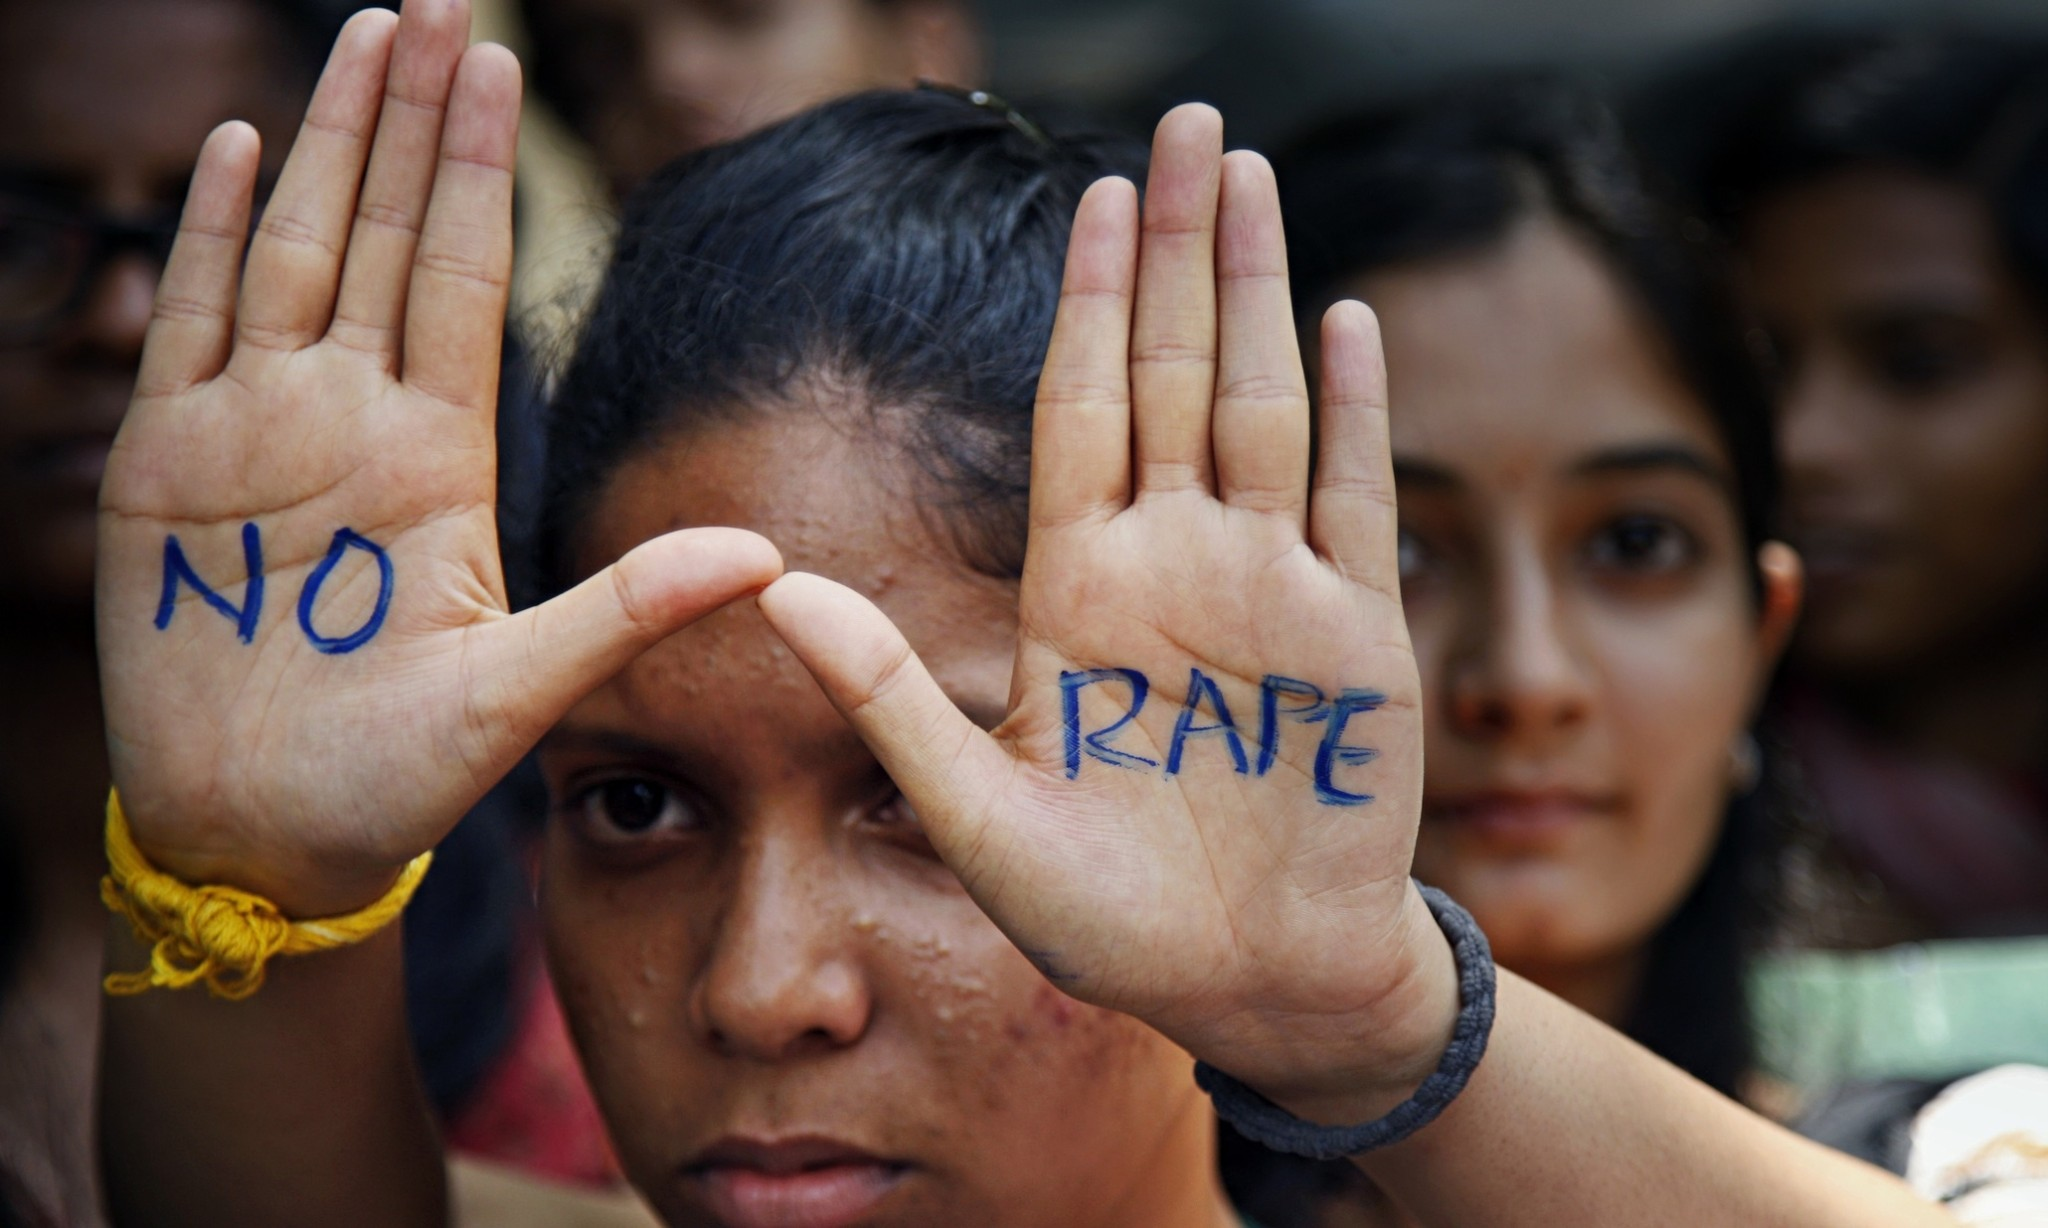 Indian women found their voice after the Delhi rape. Could this film help silence them again?